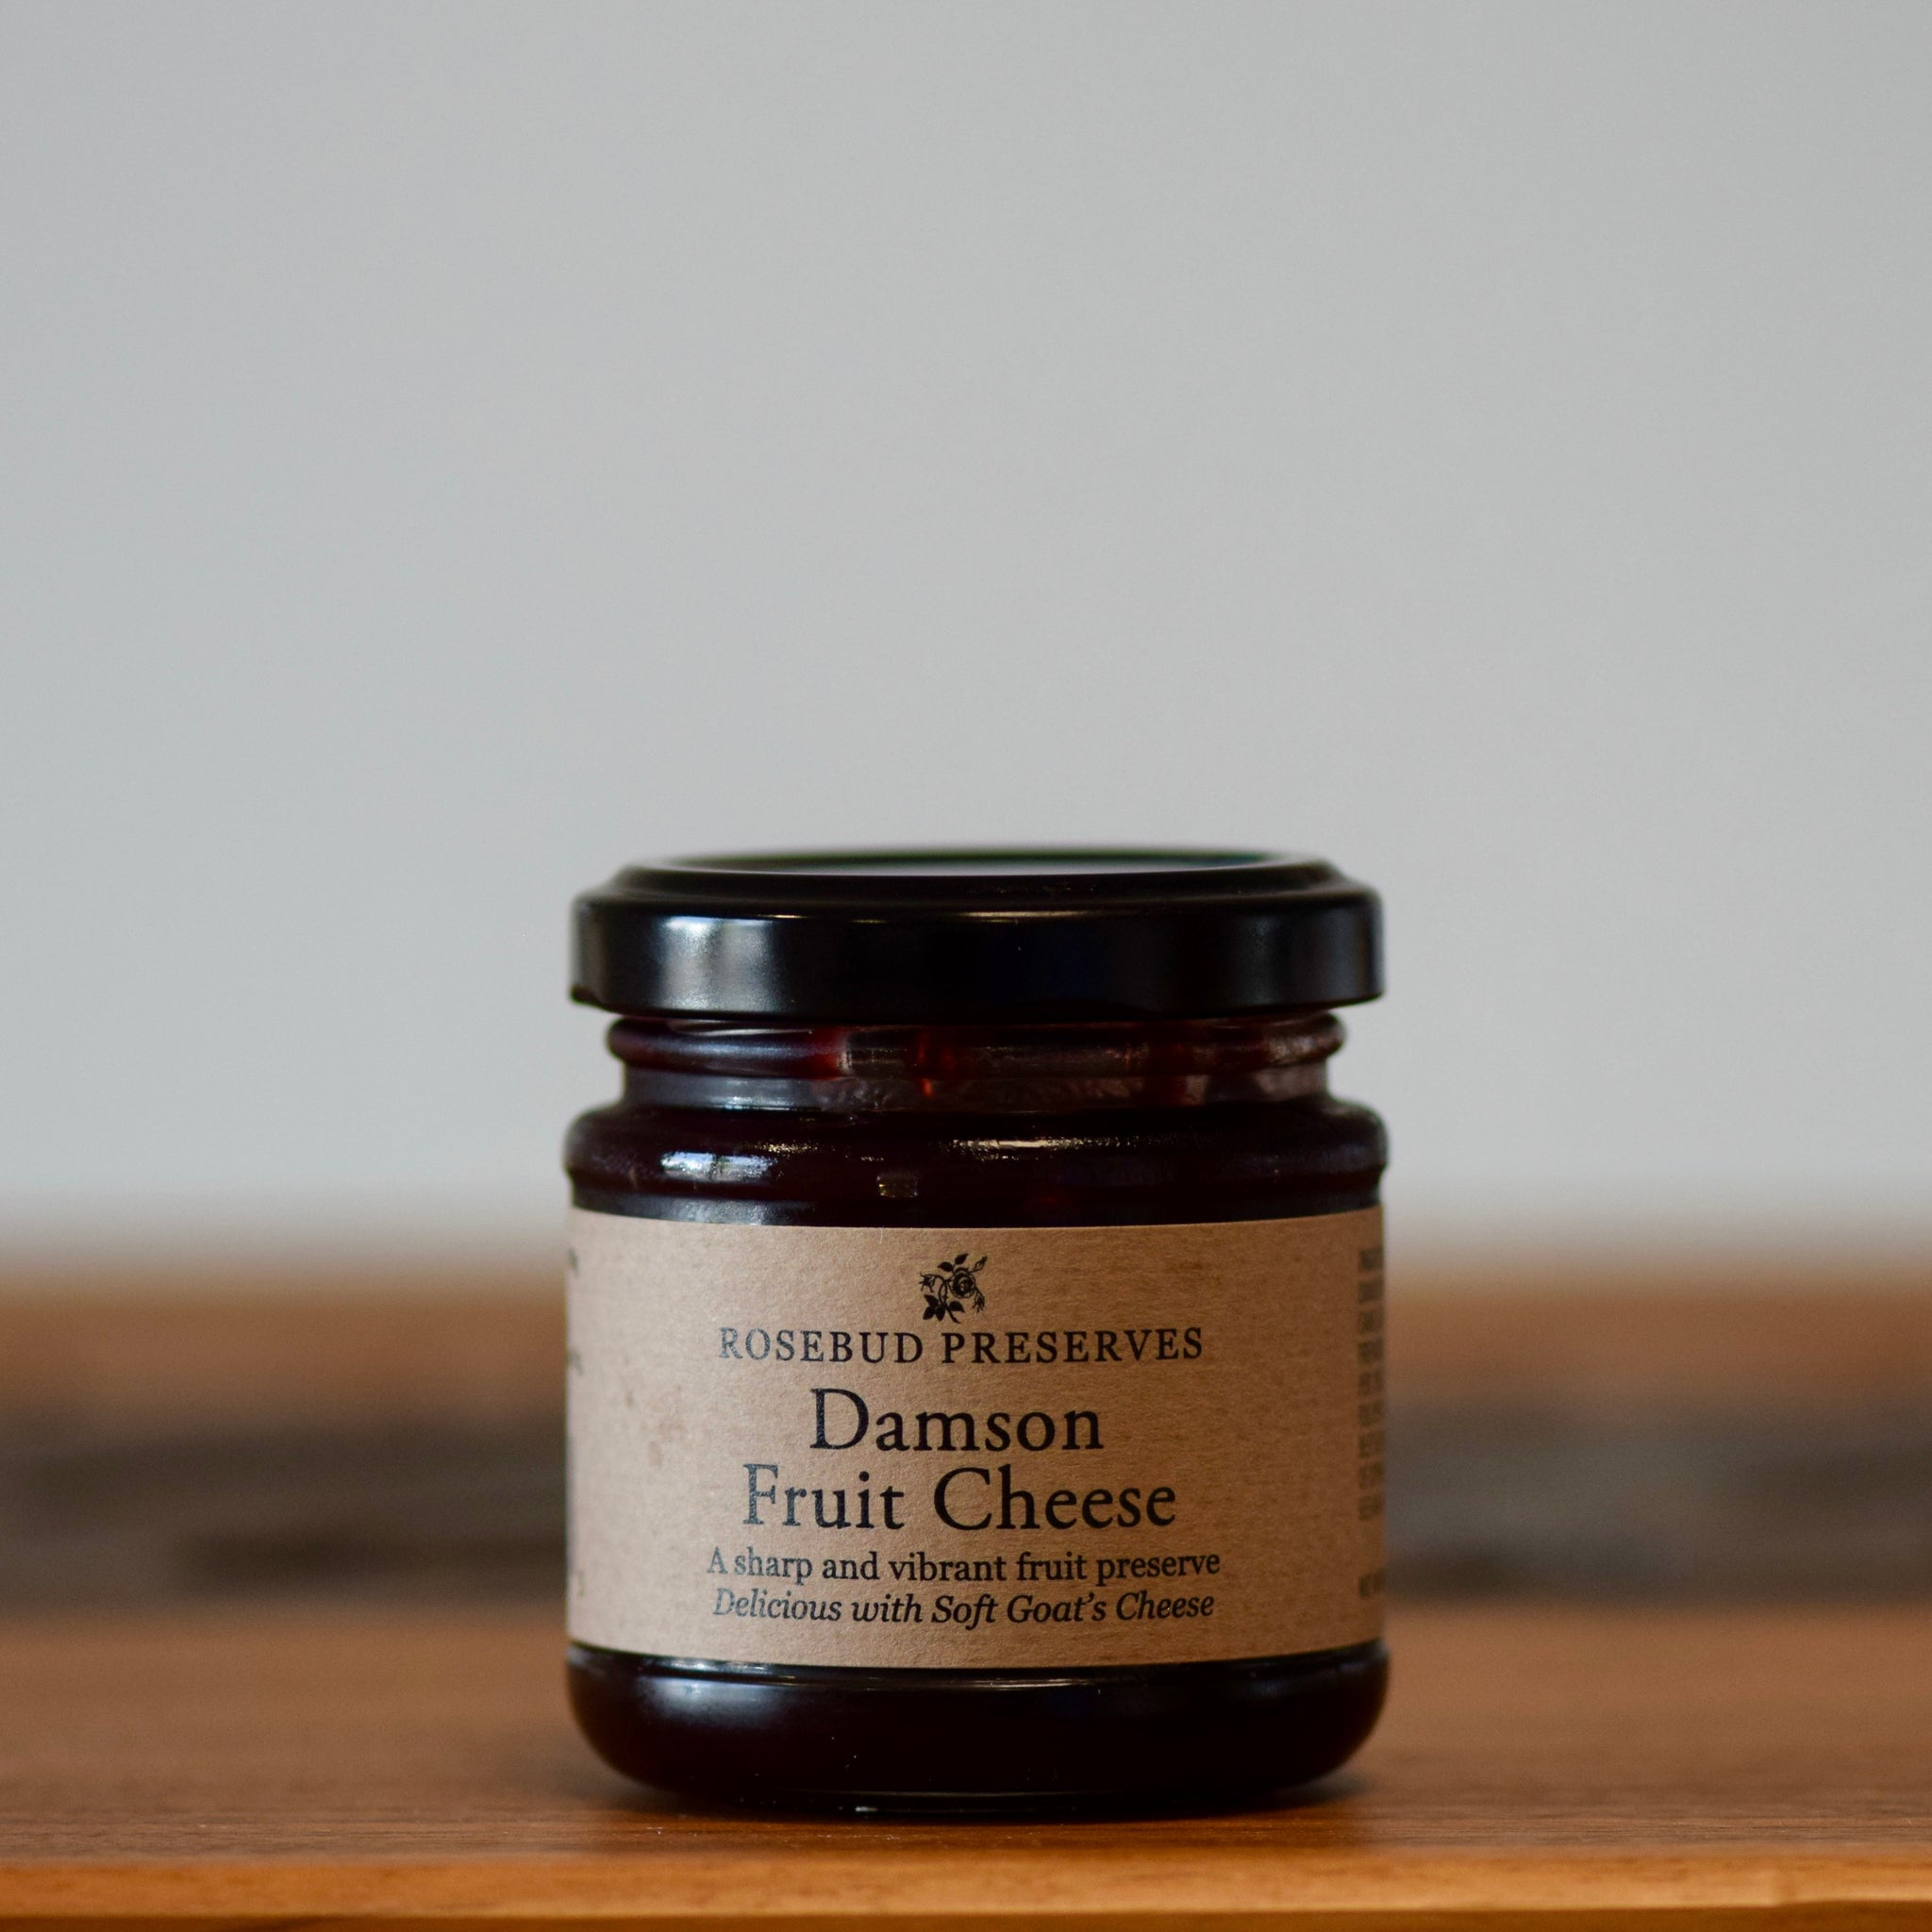 Damson Fruit Cheese - Rennet & Rind British Artisan Cheese